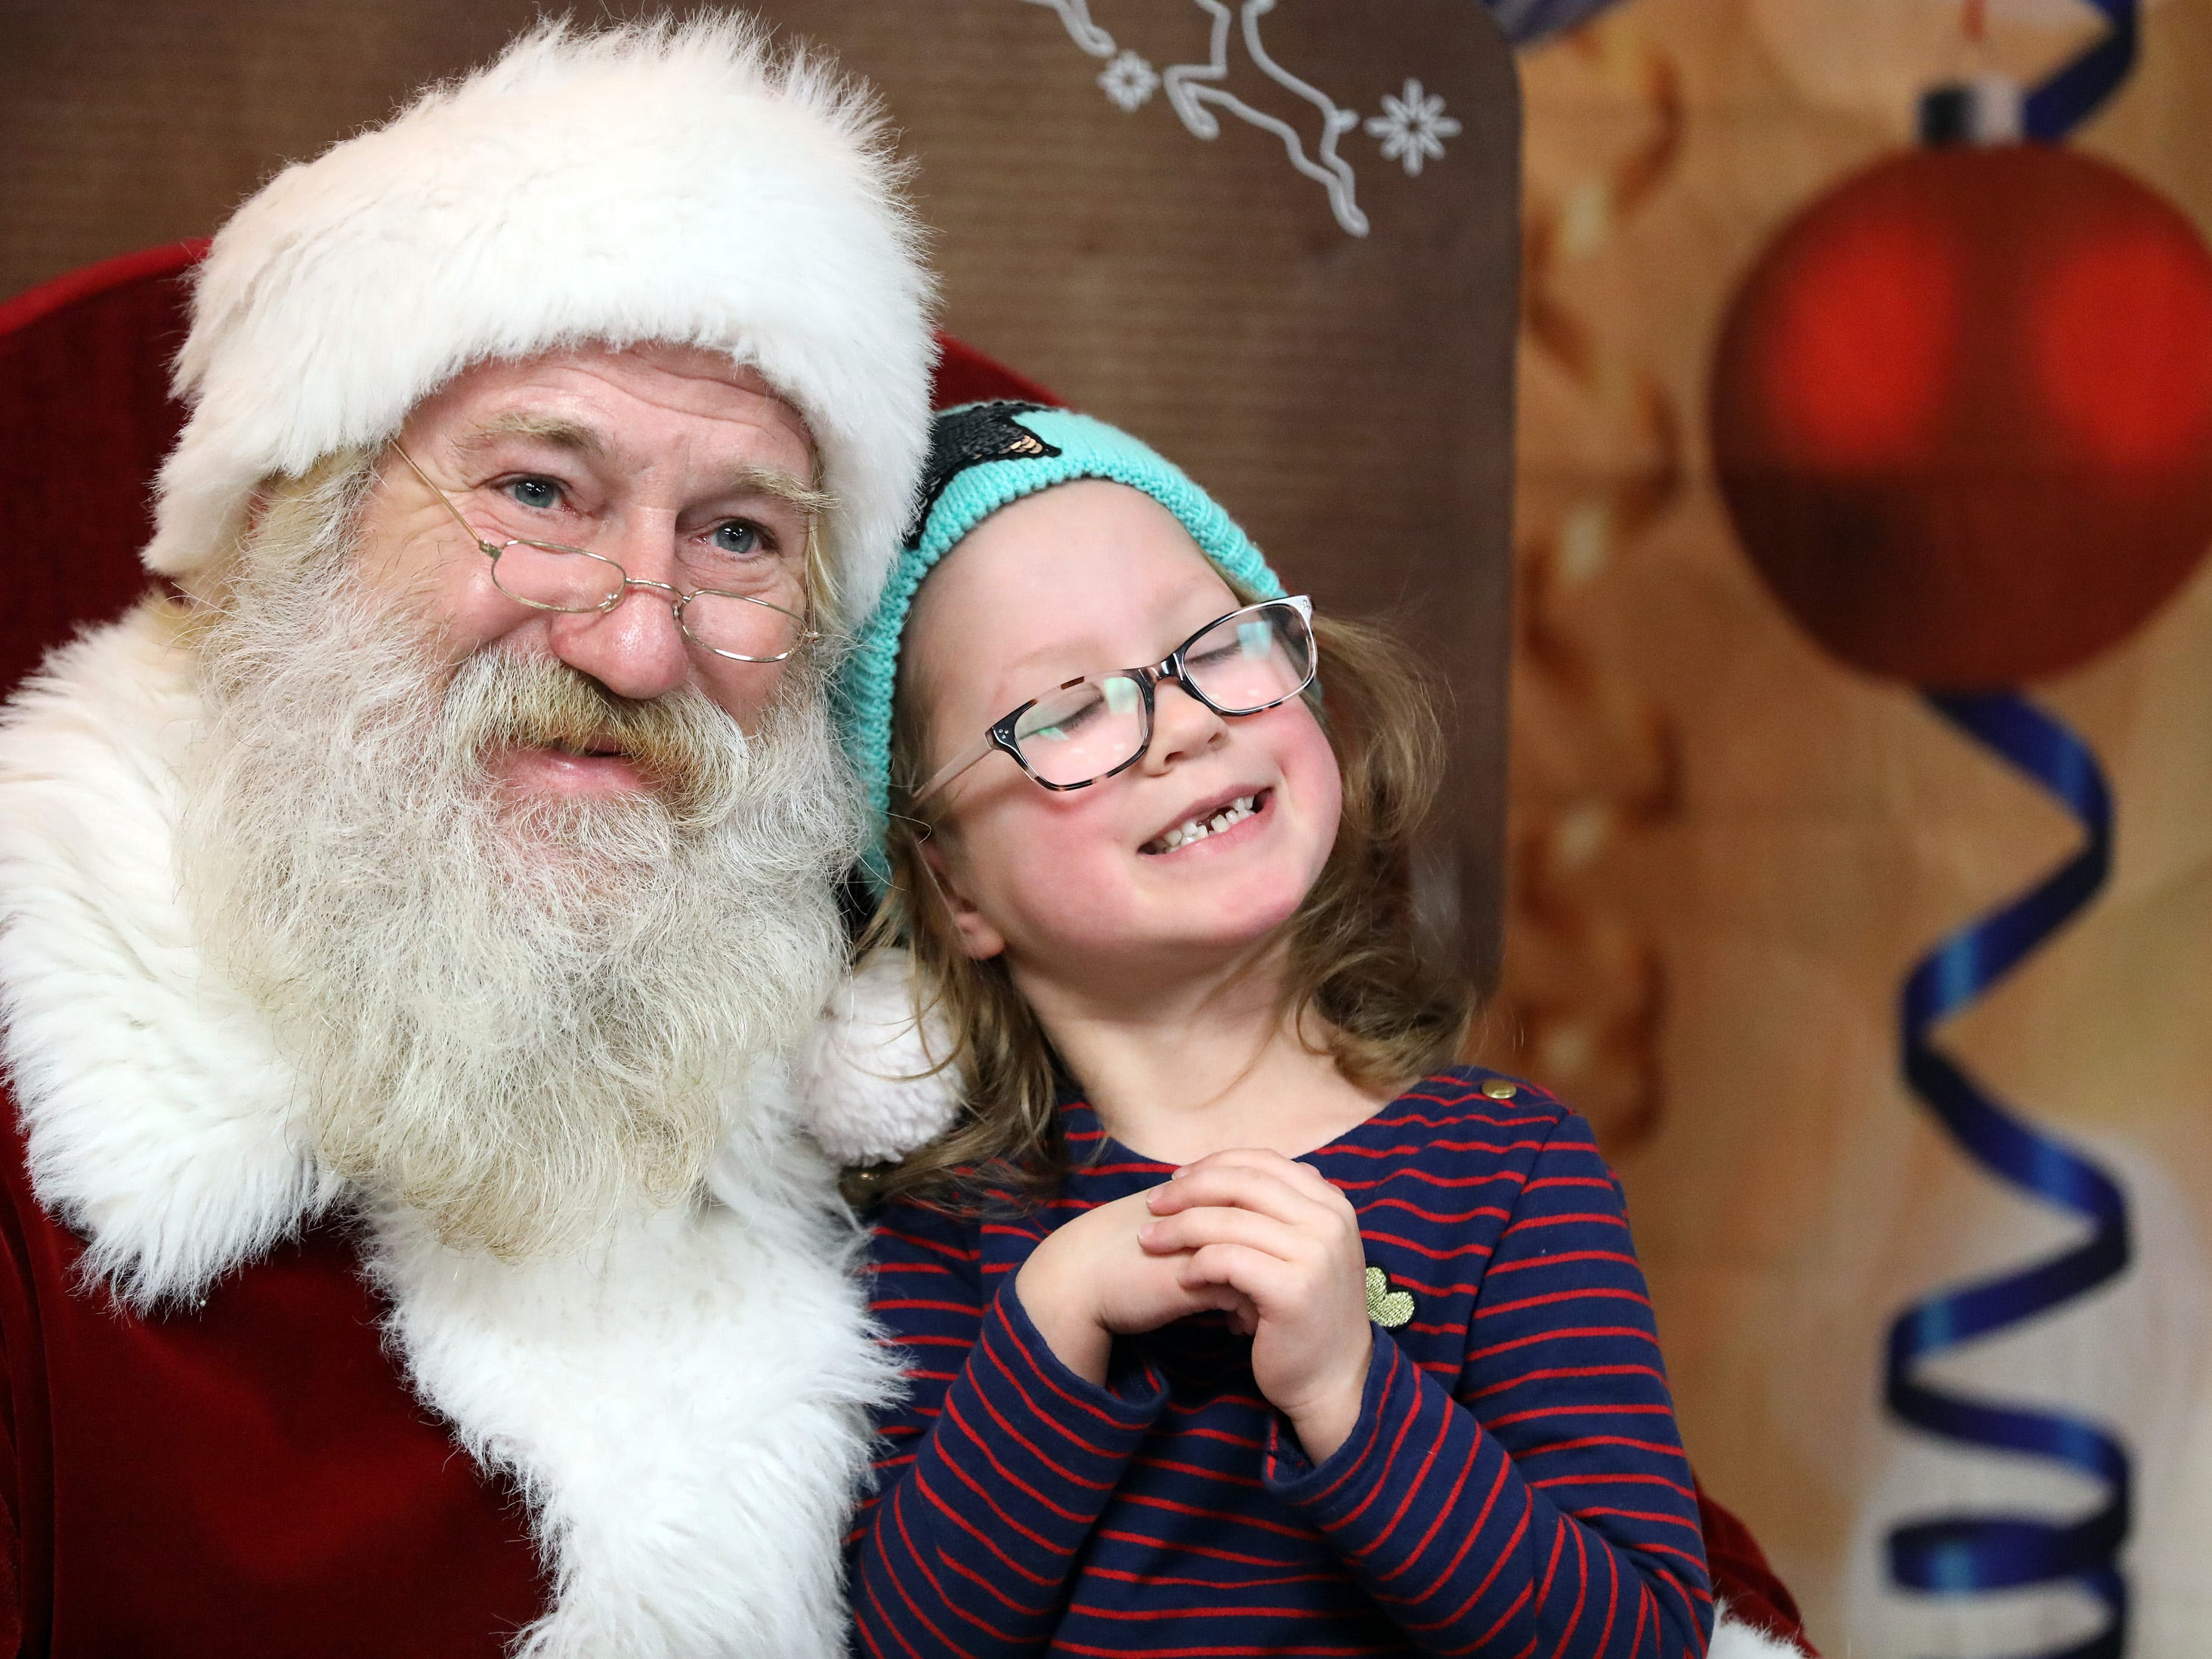 Eve Crow, 6, of Urbandale enjoys her time with Santa during UCAN's  third annual Light Up Urbandale on Sunday, Dec. 2, 2018 at Lions Park in Urbandale. Holiday festivities included a visit from Santa, crafts, goodies, official tree lighting ceremony, live reindeer and entertainment.